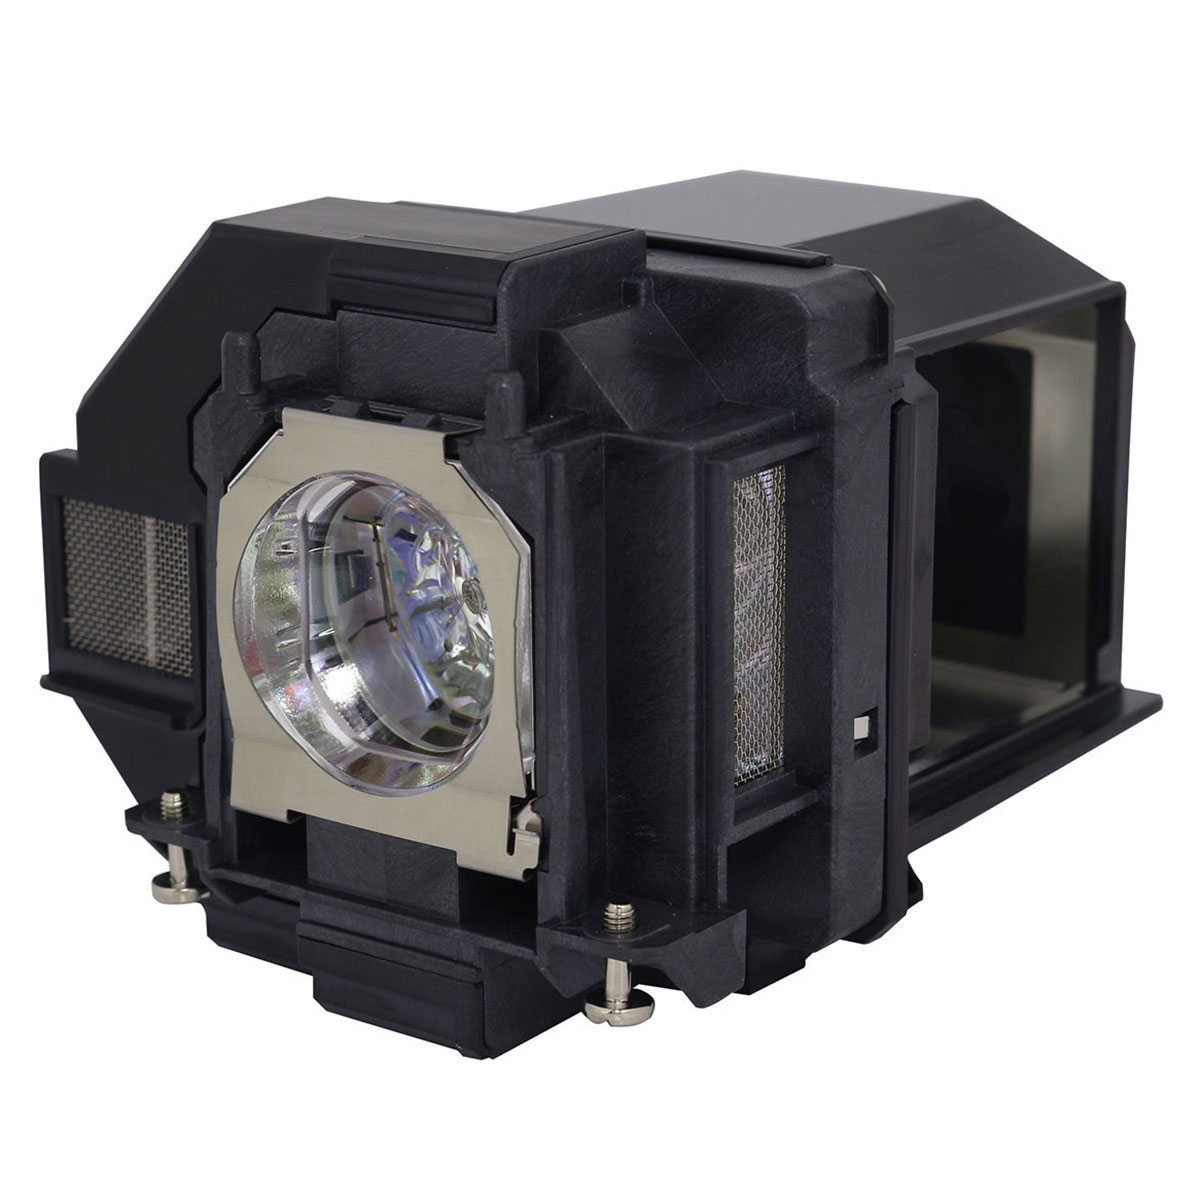 Original Osram Projector Lamp Replacement with Housing for Epson V13H010L96 - image 5 of 5